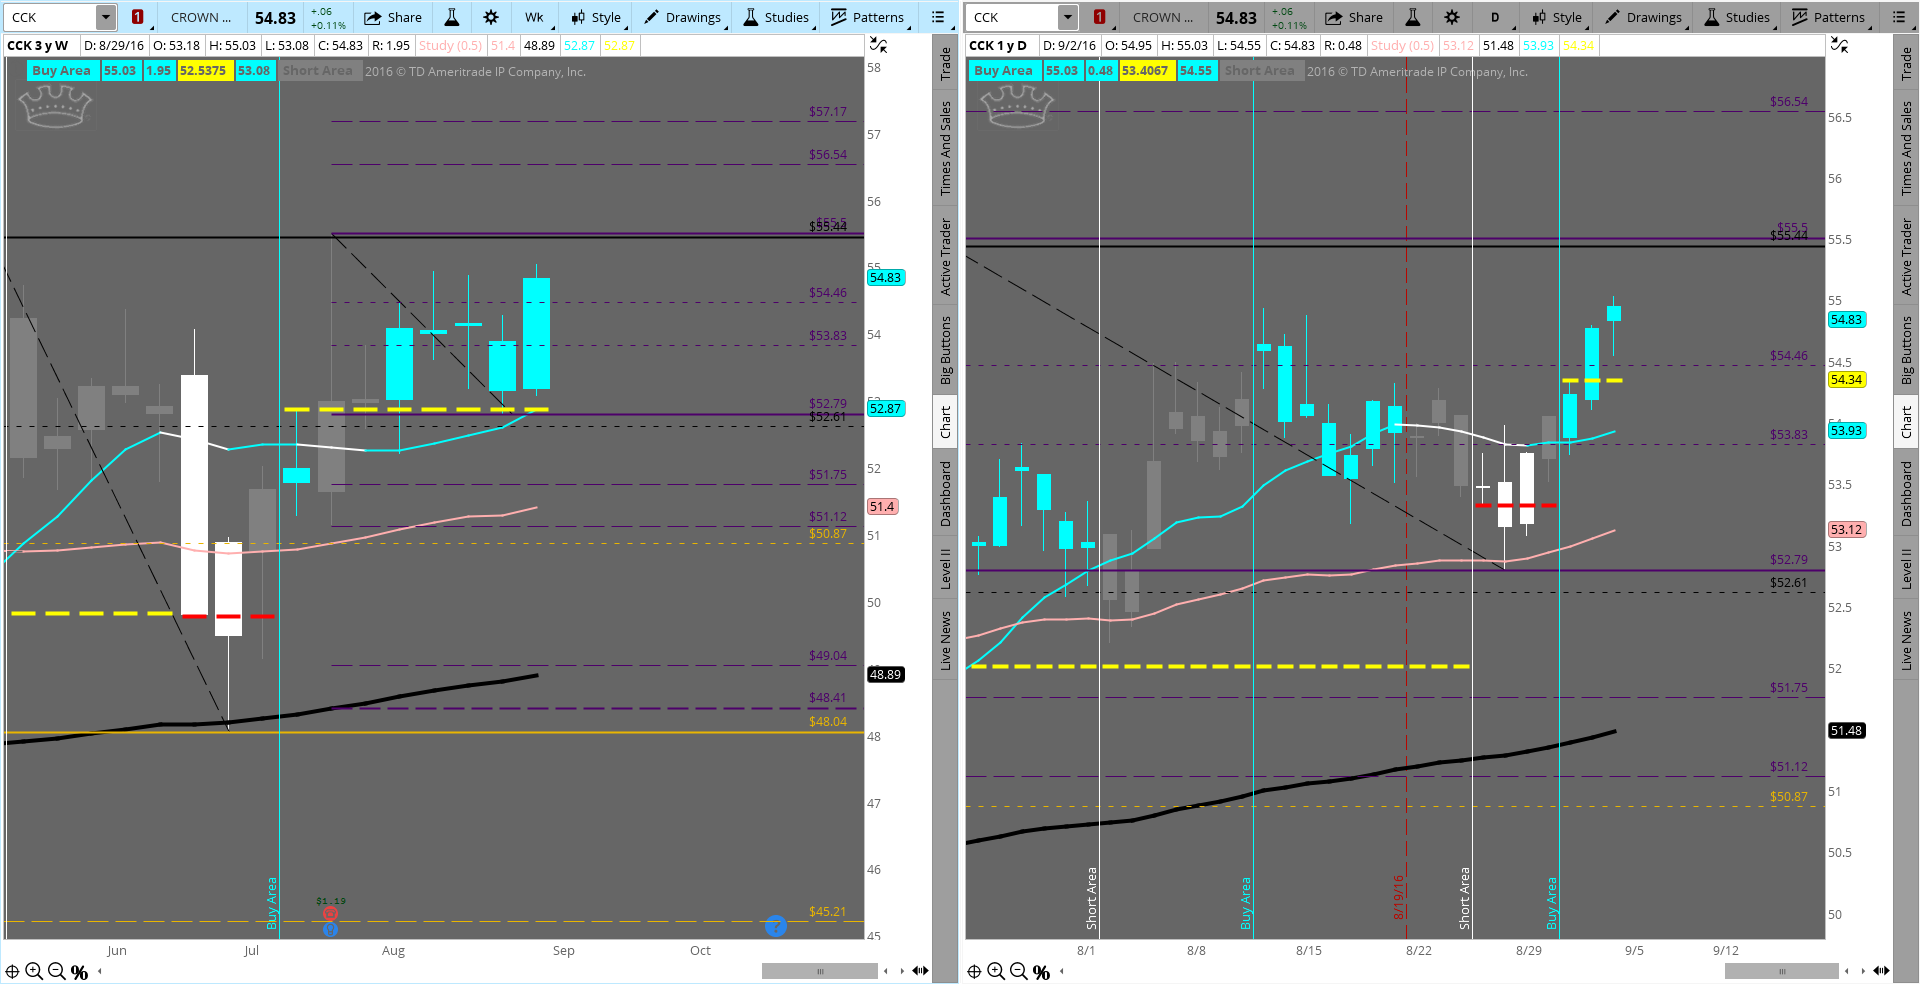 $CCK still a long since 54.34 was broken. Targets 54.46(hit) 55.5 & 56.54. Bears must retake 53.93 first $DIA $YM_F $DJX  Just another one that was posted BEFORE it happened!  This one posted on 8/31.